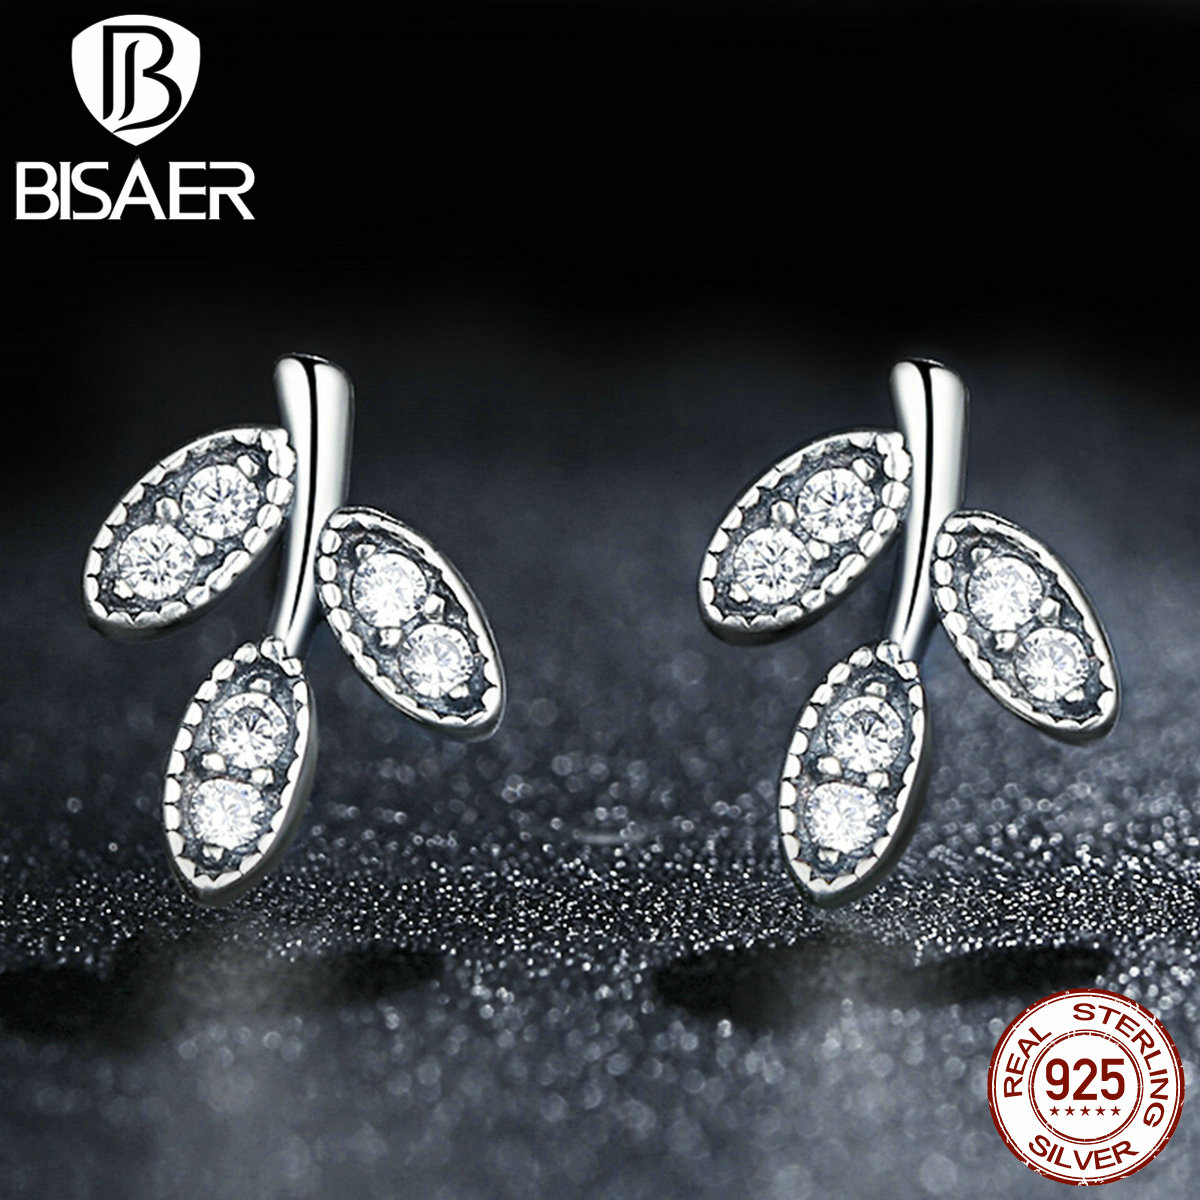 2016 Presents 925 Sterling Silver Sparkling Leaves Stud Earrings Clear CZ Compatible with Pandora Jewelry Special Store(China (Mainland))